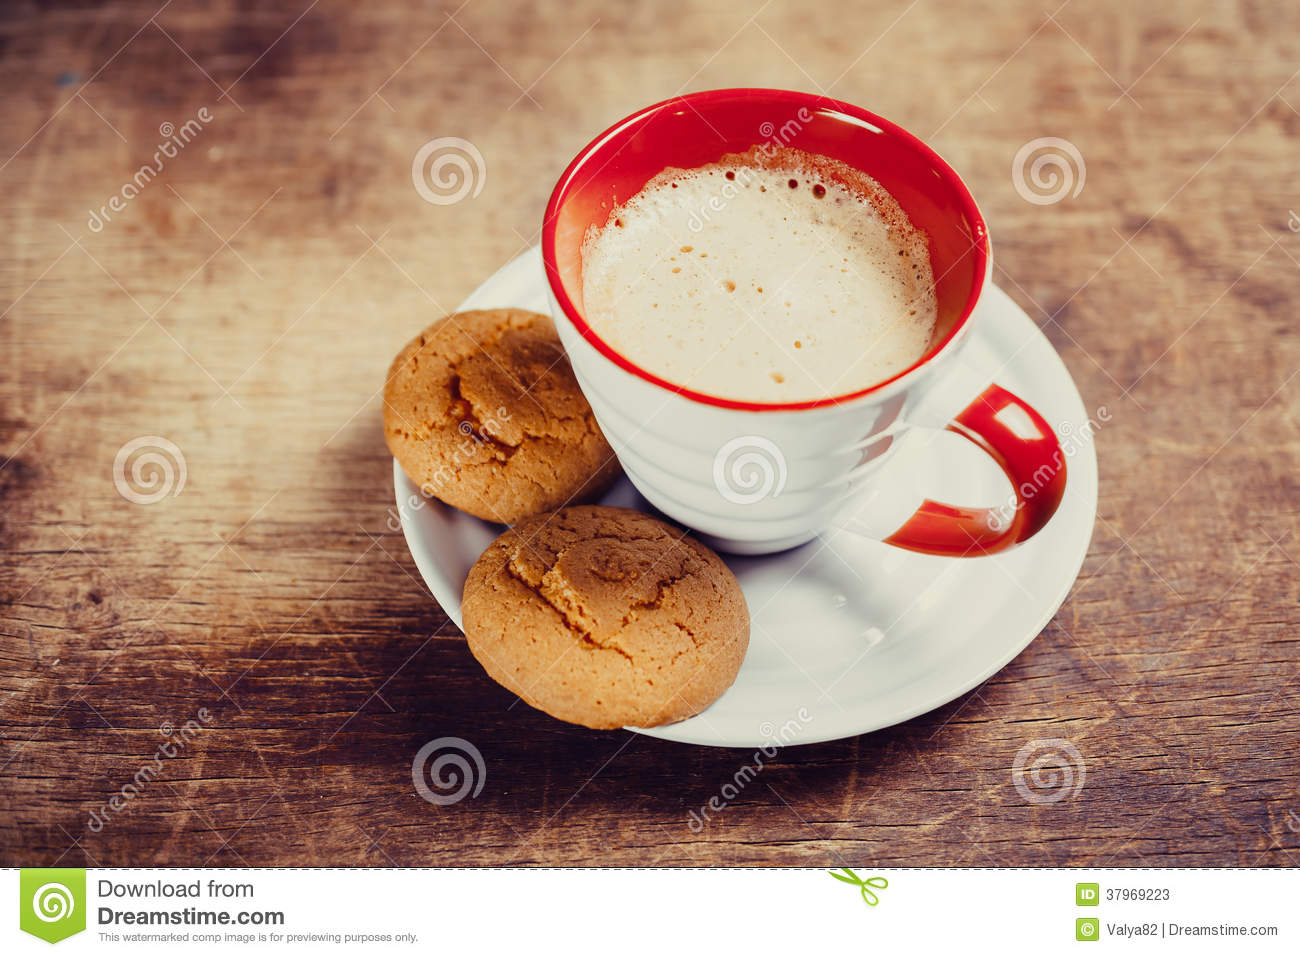 Coffee And Biscuits Stock Photos - Image: 37969223